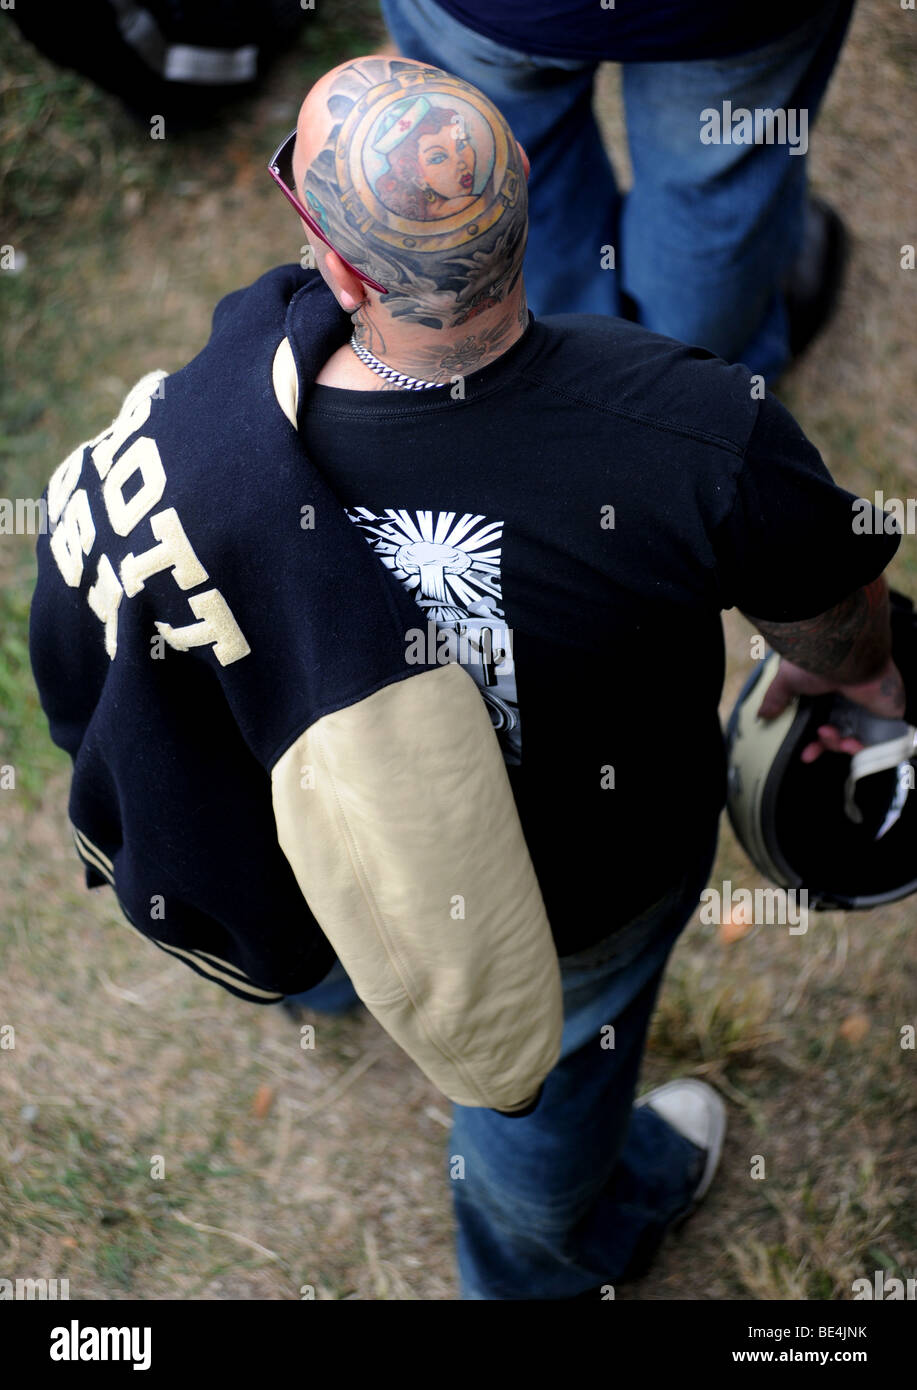 A biker with a tattooed head during the Ace Cafe Reunion 2009 - Stock Image